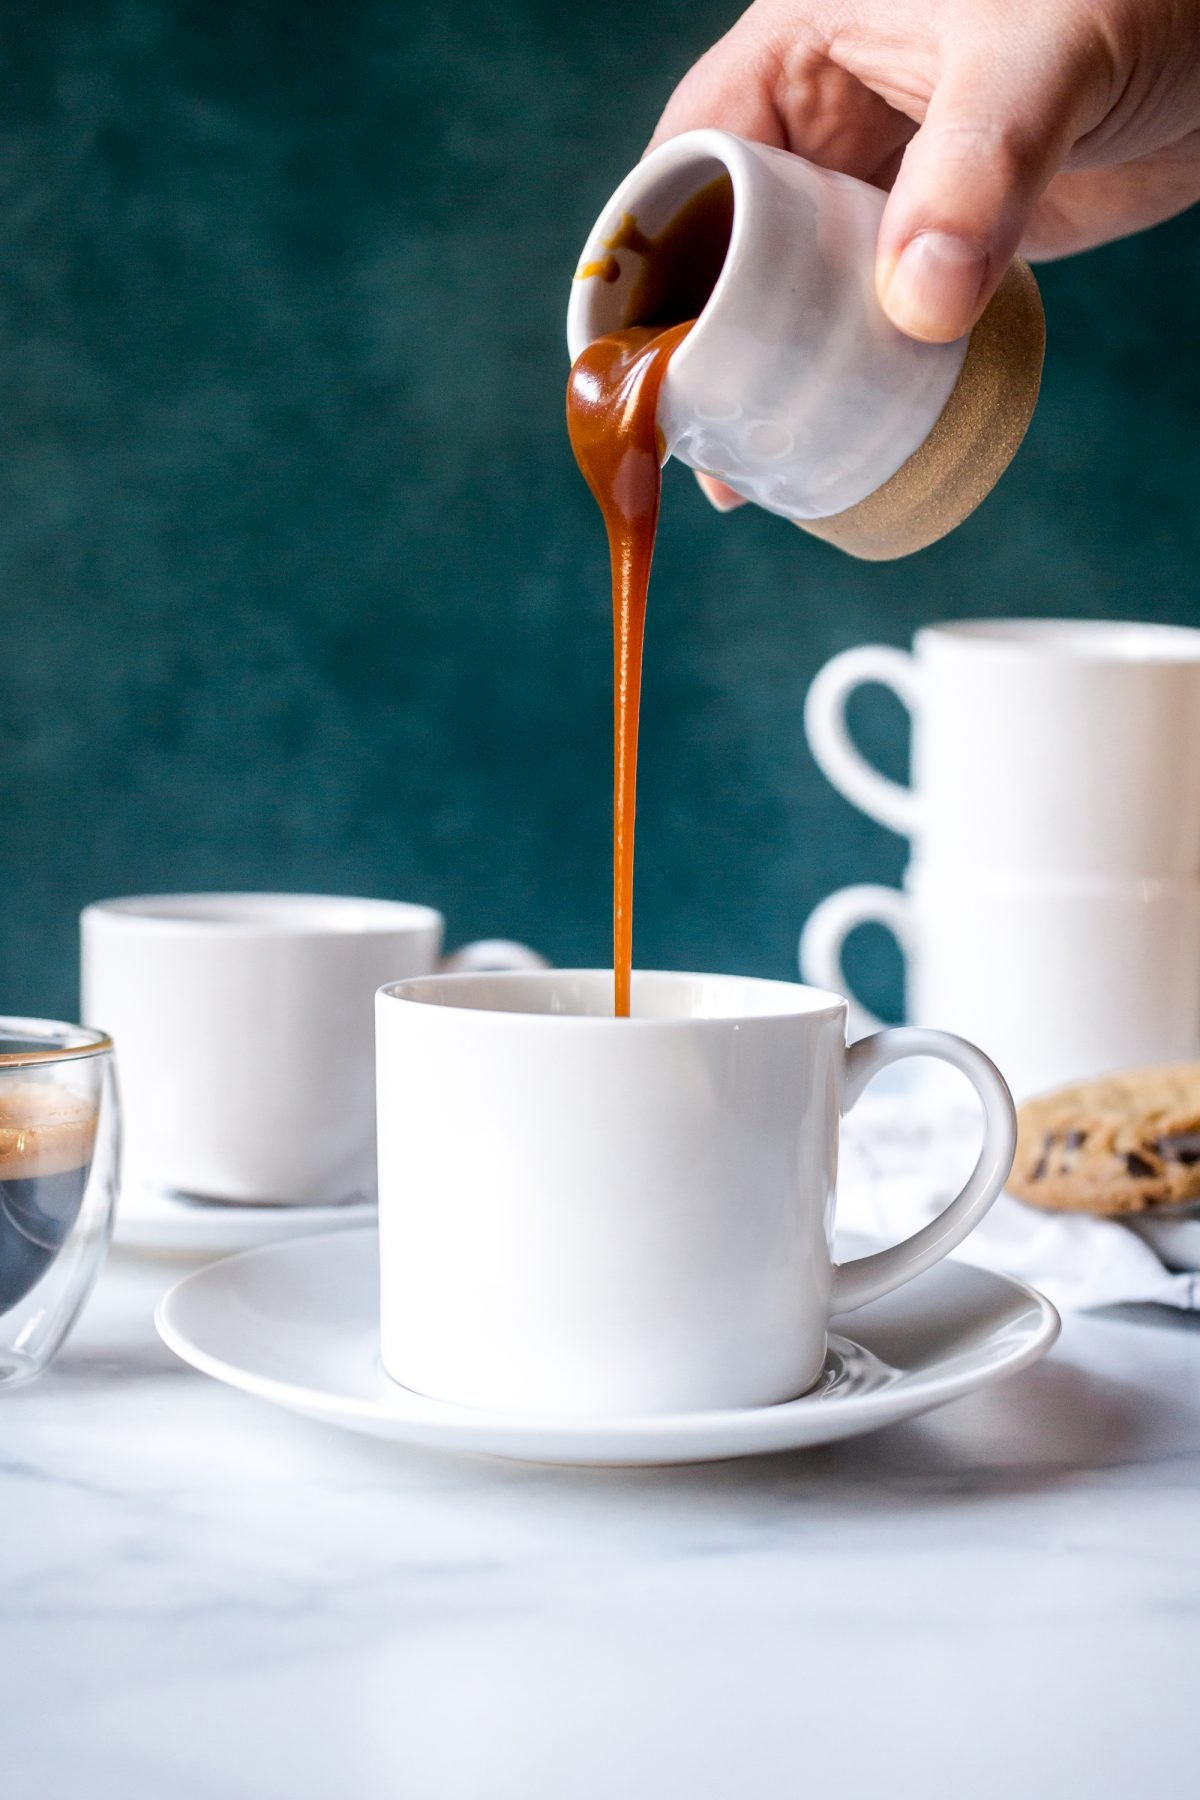 A hand pouring caramel sauce into a white coffee mug on a saucer